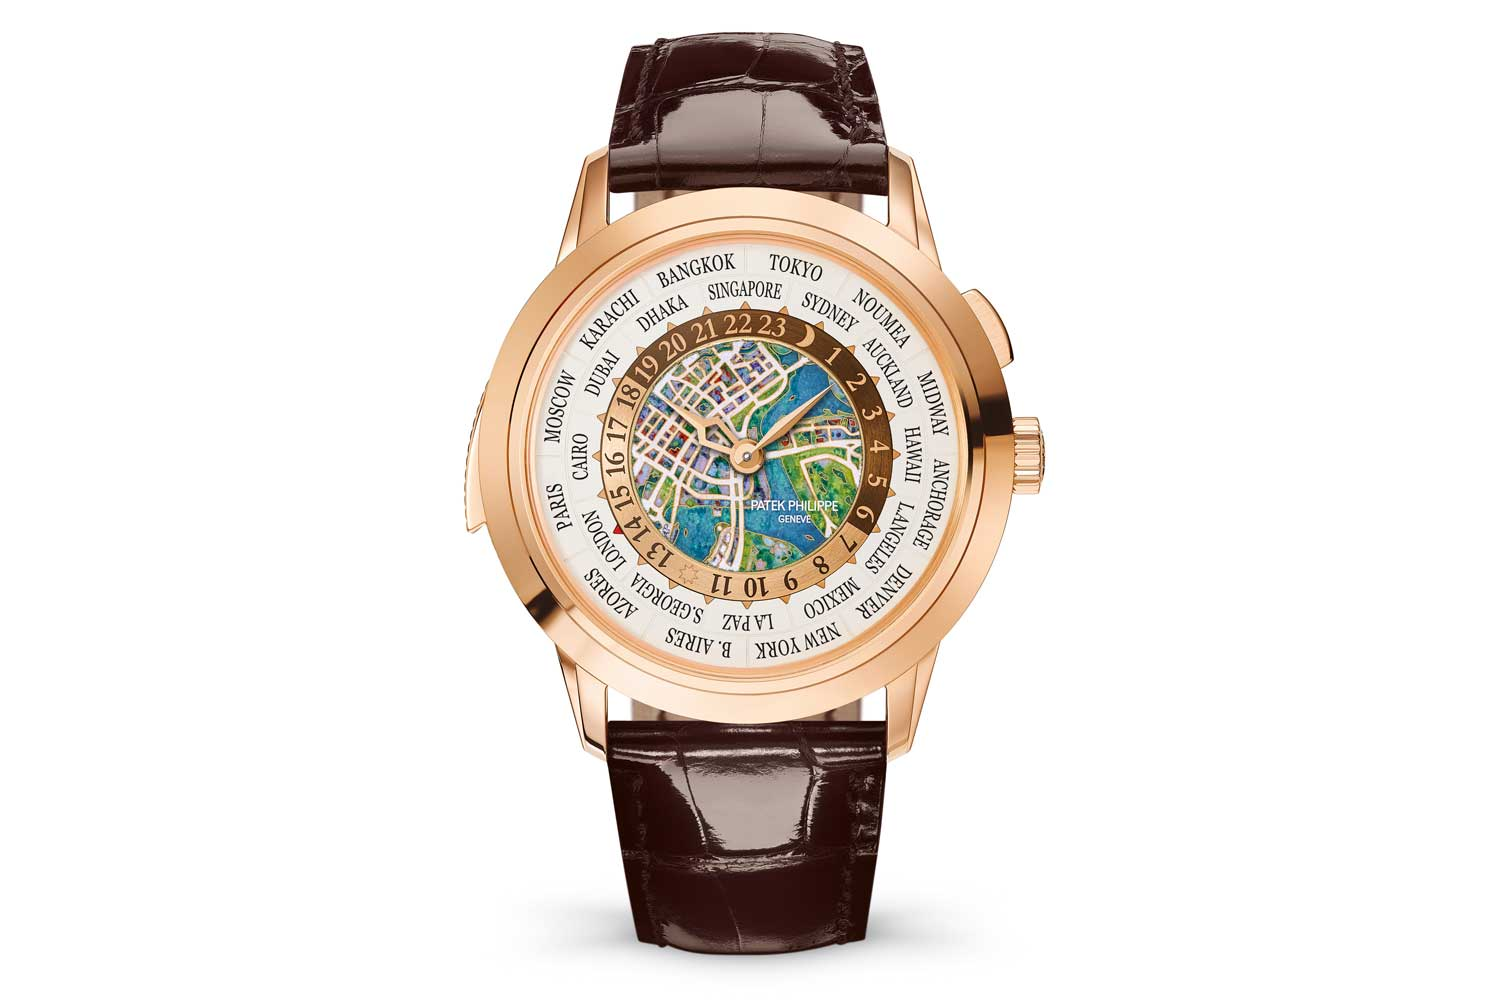 In 2019, Patek Philippe unveiled a stunning version of the 5531R with an aerial map of Singapore in cloisonné enamel to commemorate Patek's Grand Exhibition in the city.